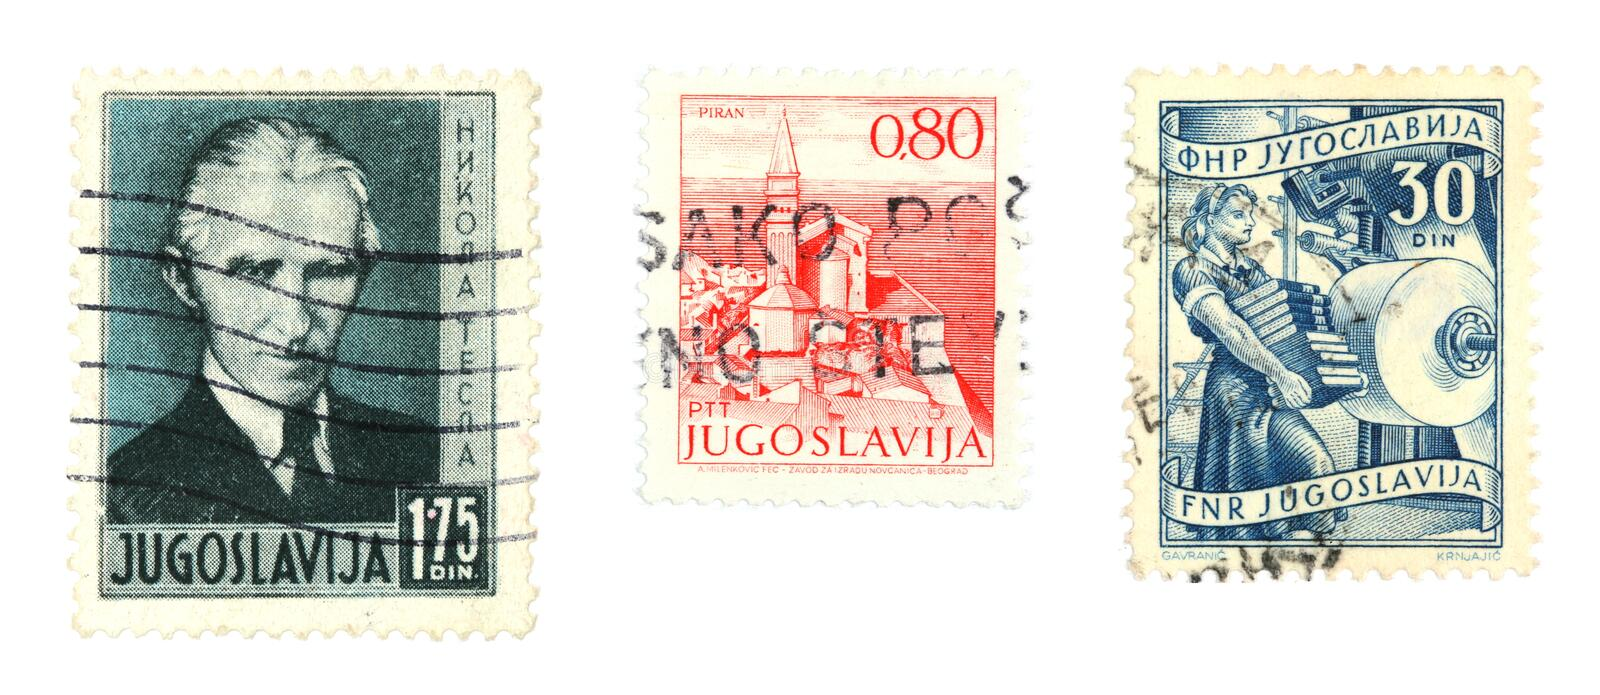 Yugoslavia stamps. Collectible stamps from Yugoslavia. Famous scientist Nicola Tesla and view of Piran royalty free stock photo